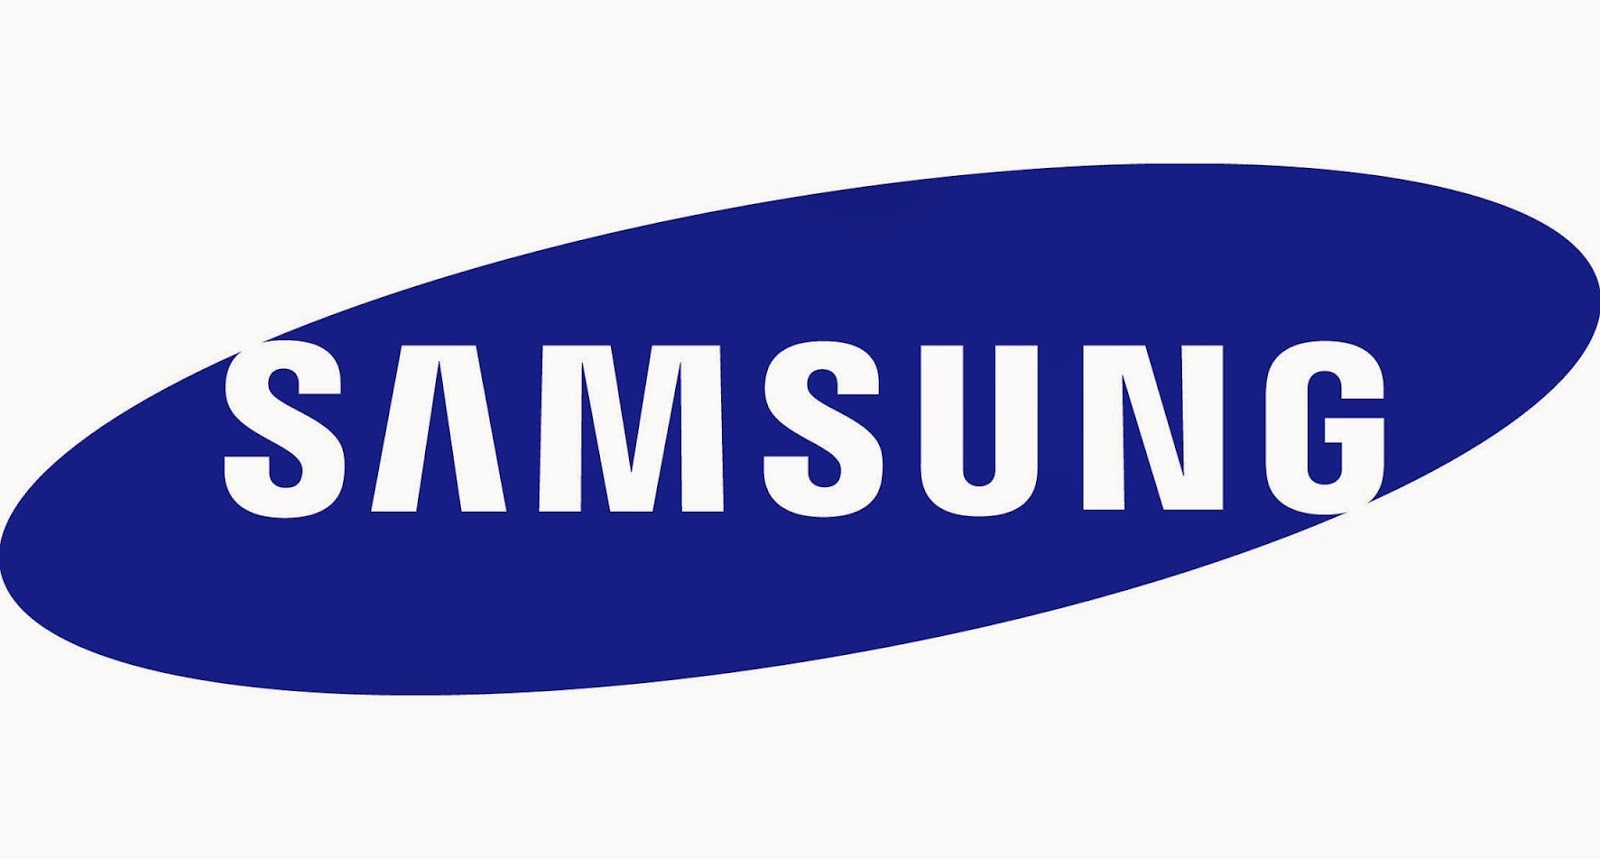 Samsung already produced 2K display, 4K is in working progress